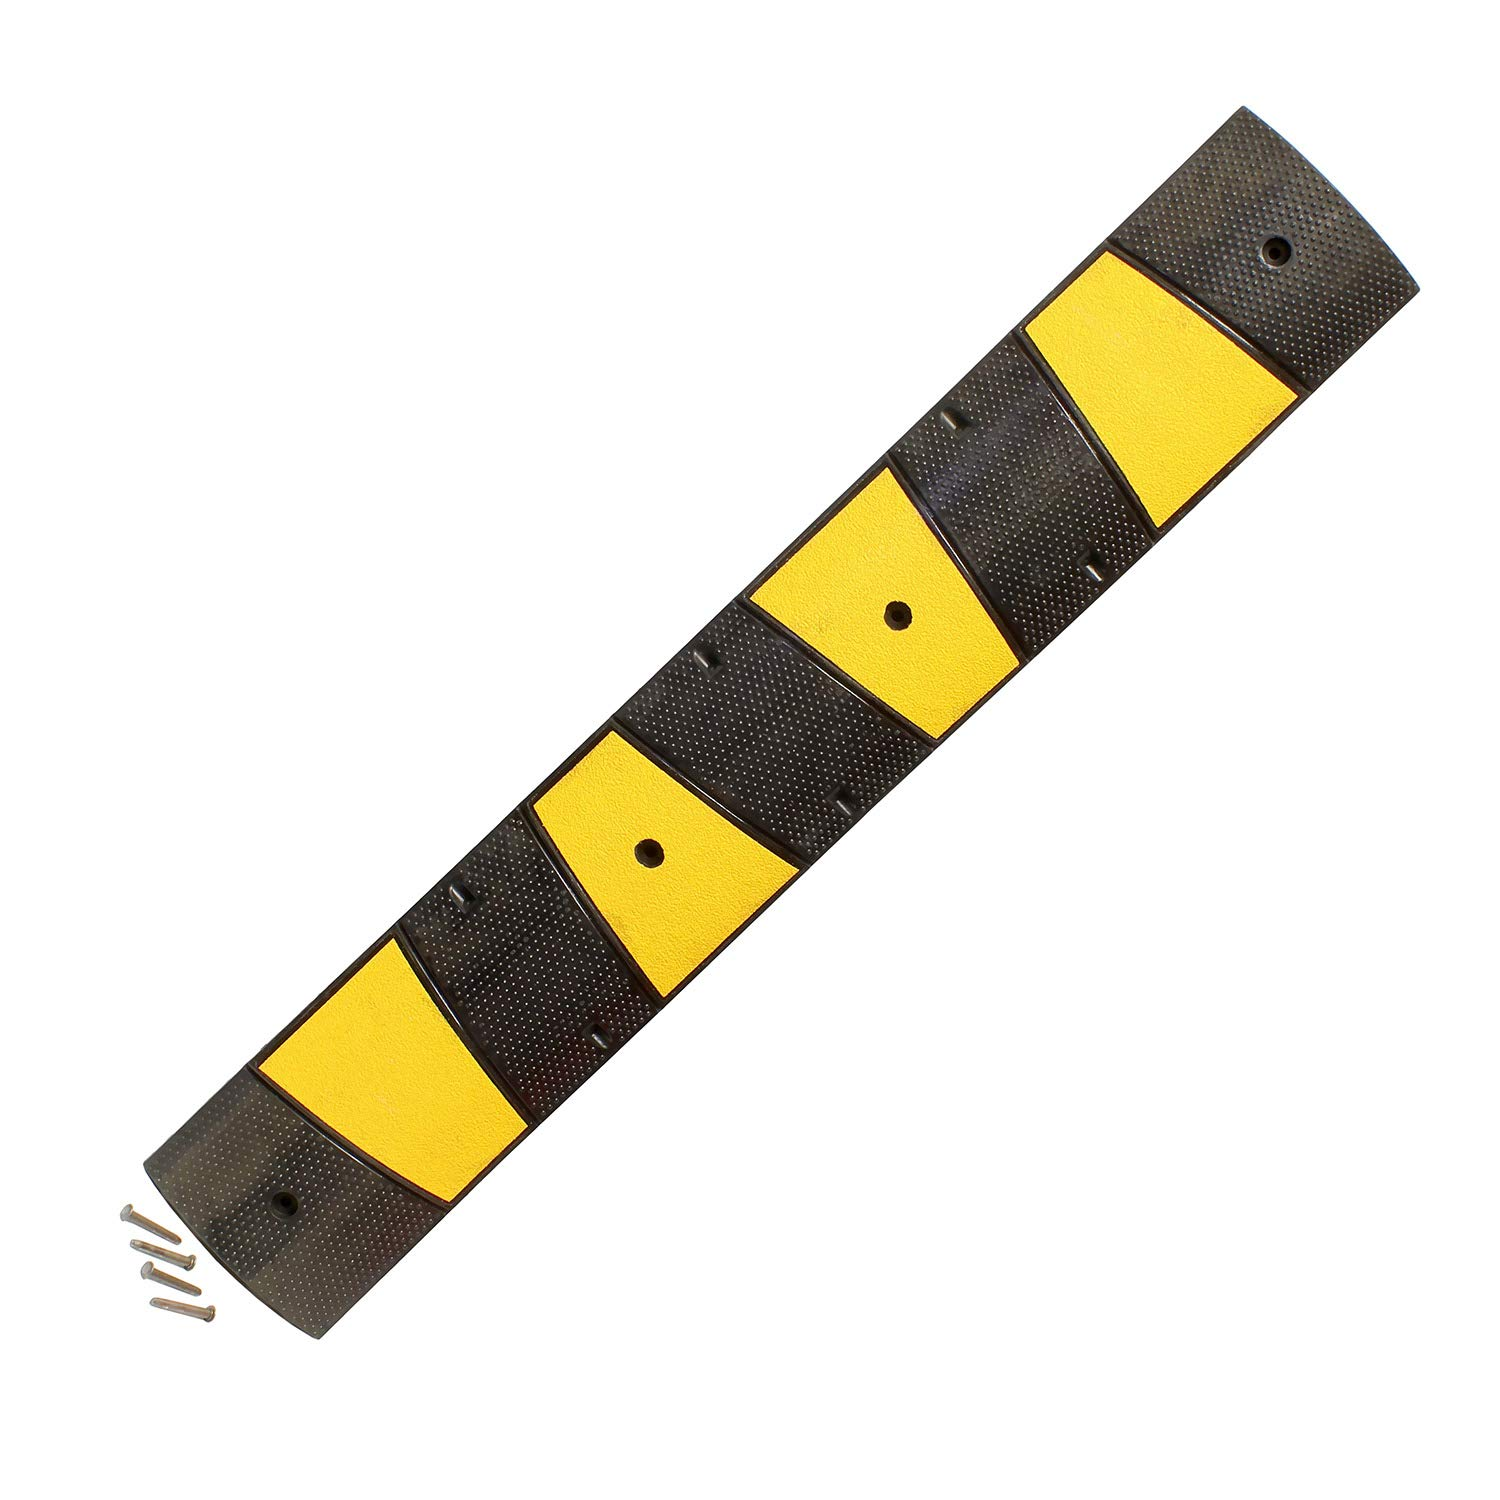 BISupply | 6 FT Portable Speed Bump – Drive Over Cord Protector Rubber Speed Bumps for Driveway and Parking Lot